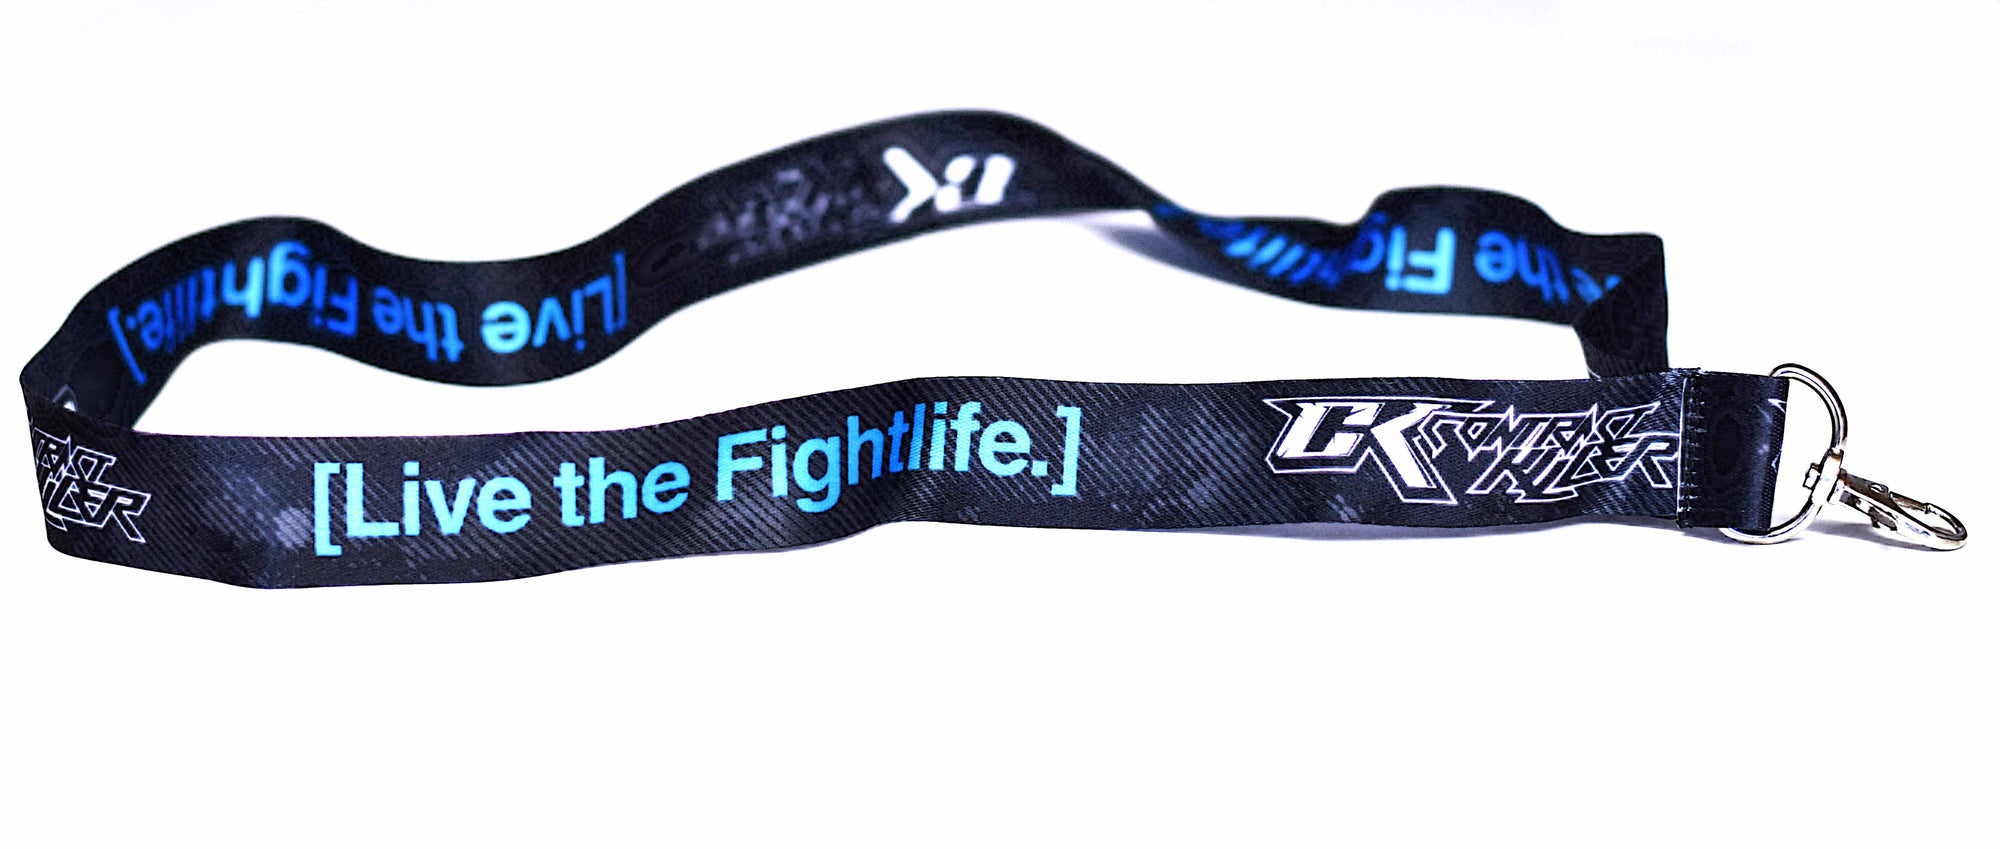 CK Live The Fight Life Lanyard